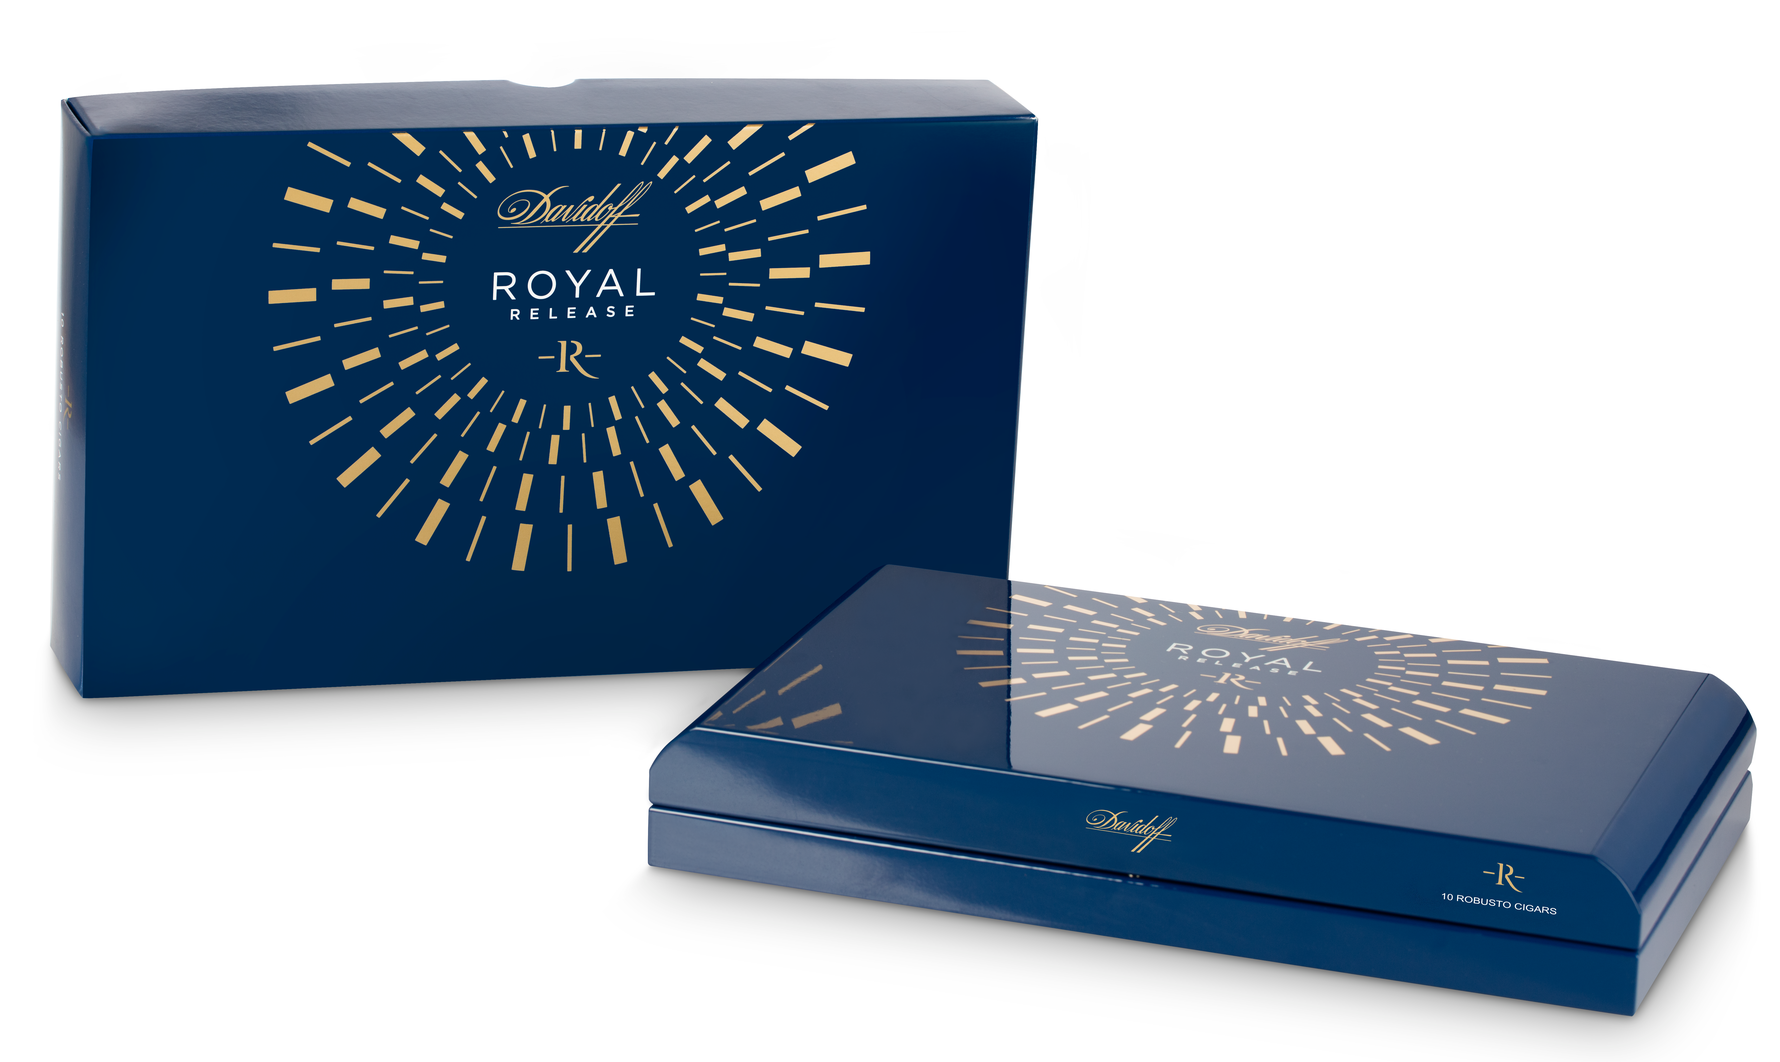 Davidoff Royal Release Boxes